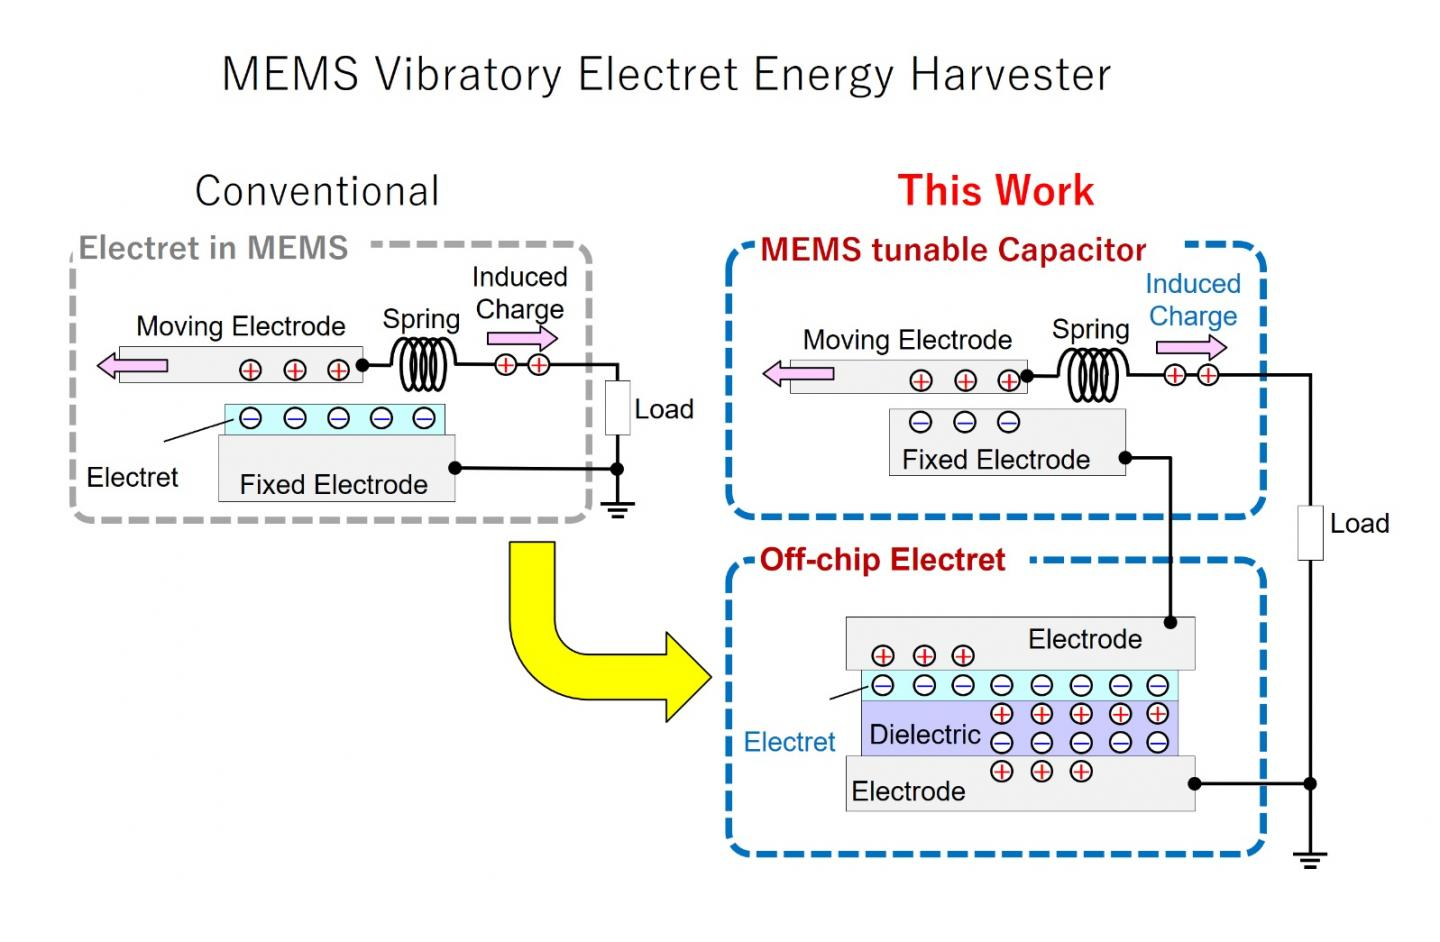 hight resolution of image unlike conventional electret based mems energy harvesters which contain the entire system in a single chip the proposed design methodology involves